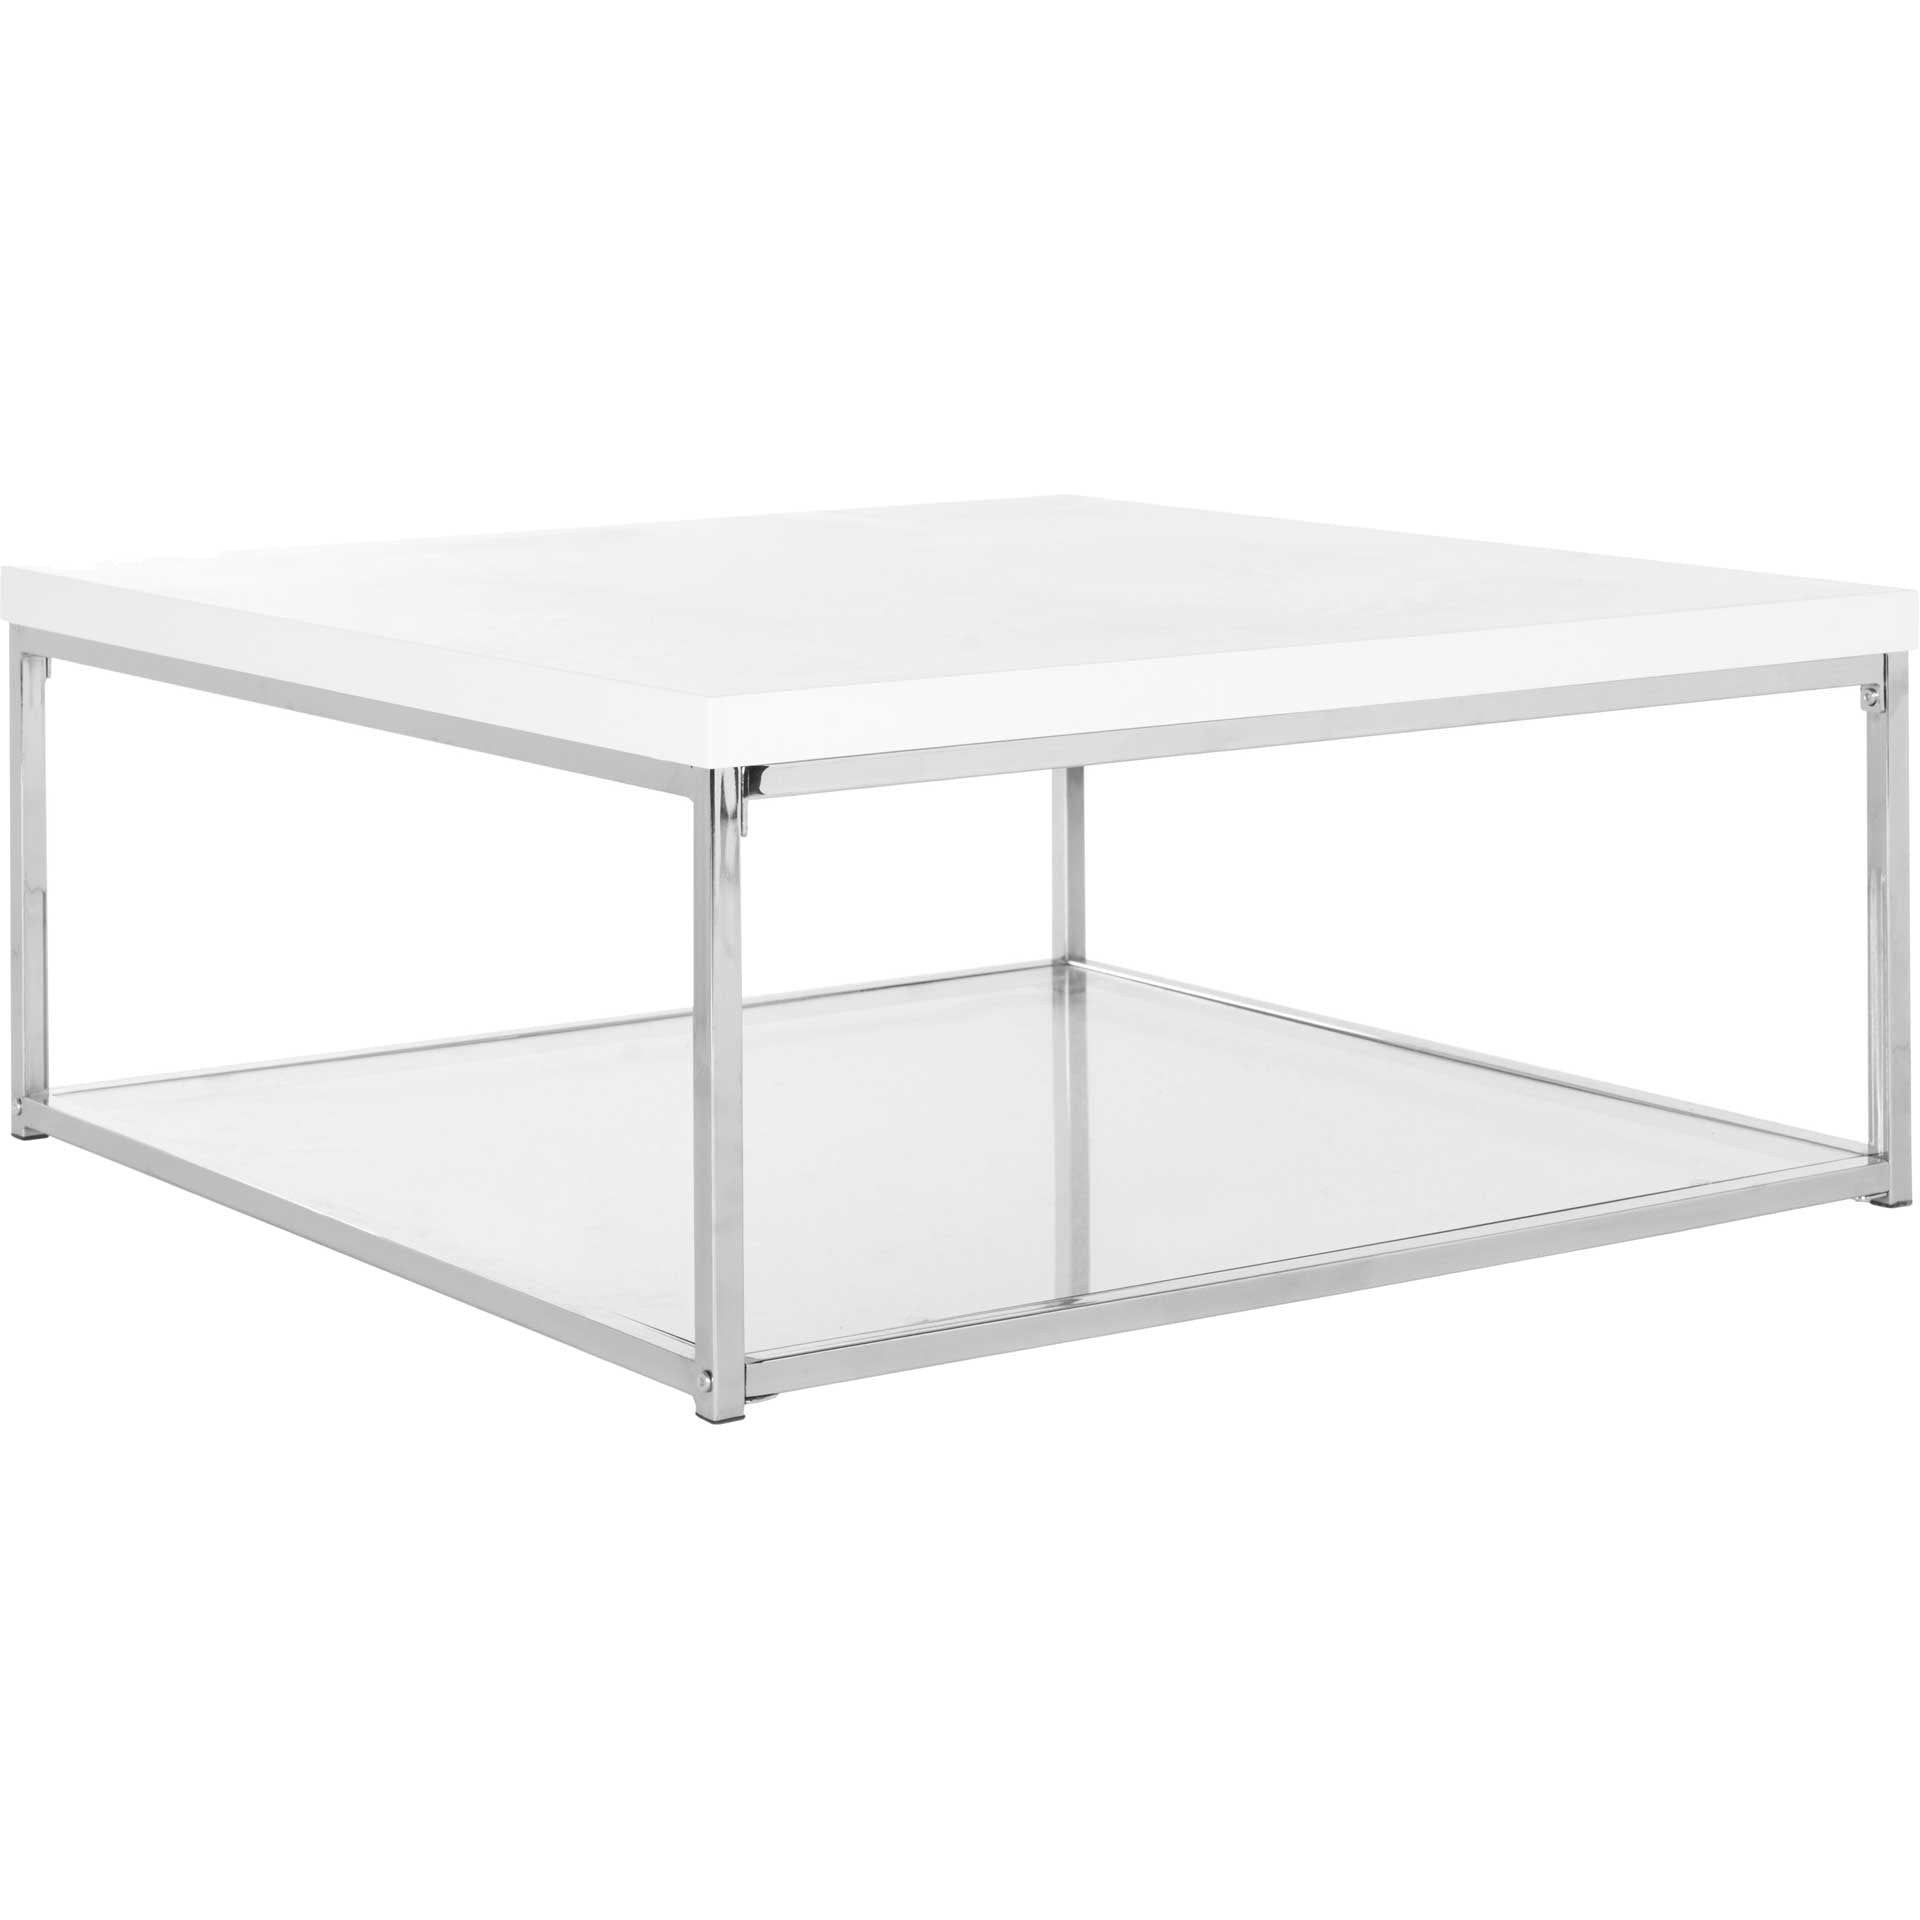 Mark Chrome High Gloss Coffee Table White/Chrome